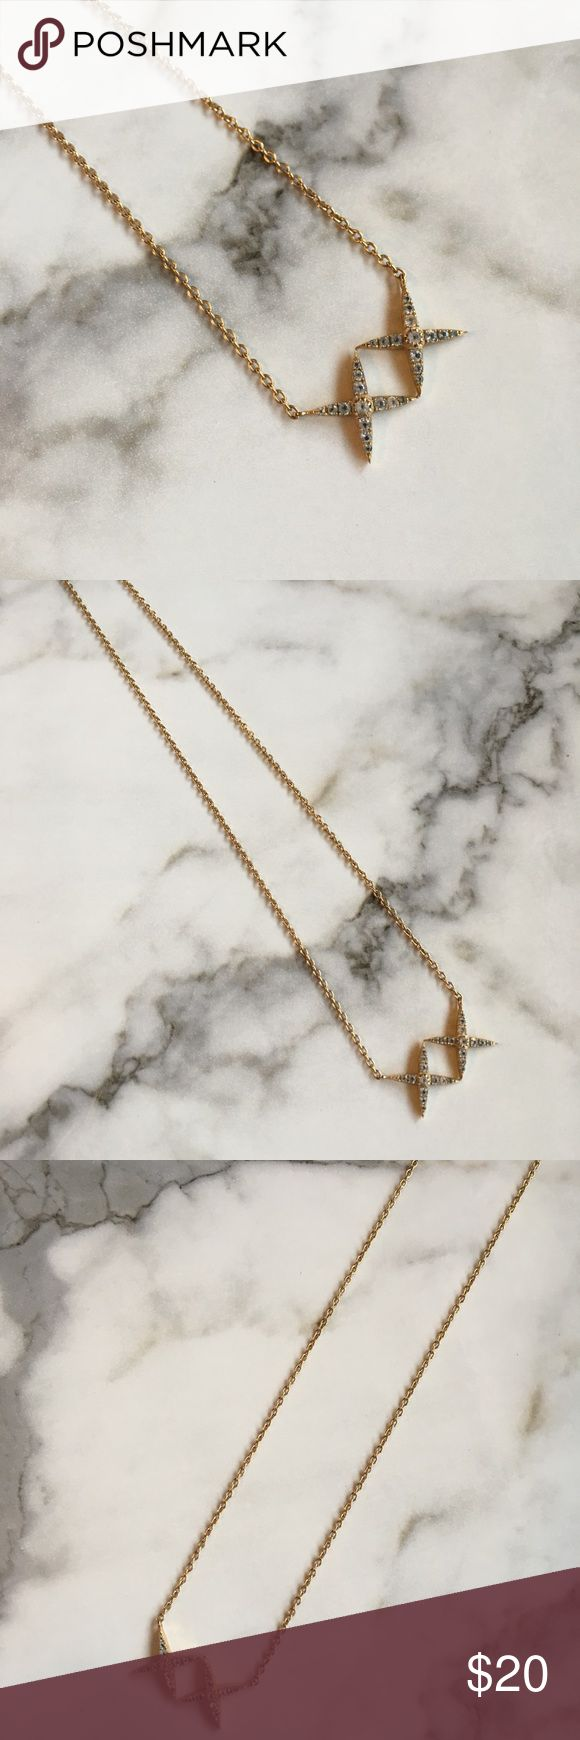 Elizabeth and James double X Necklace. Beautiful Elizabeth and James gold Double X necklace. Only worn a couple of times and is in excellent condition. Elizabeth and James Jewelry Necklaces